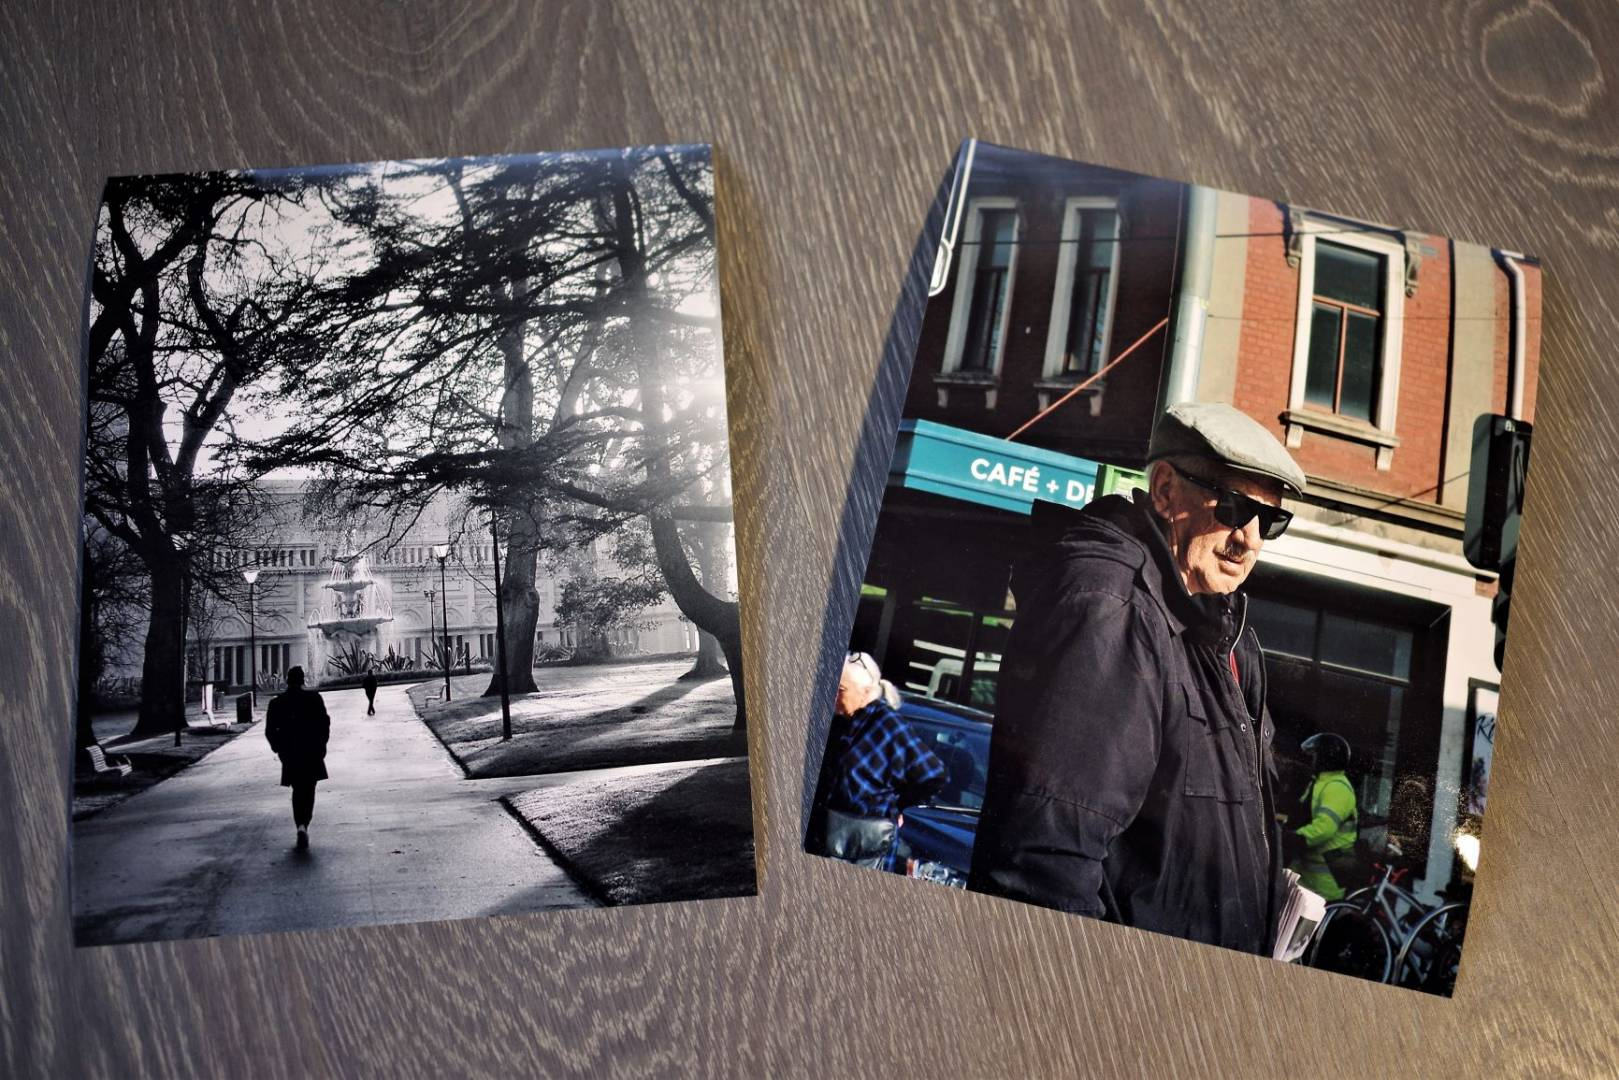 Two 10x8in prints look good in real life